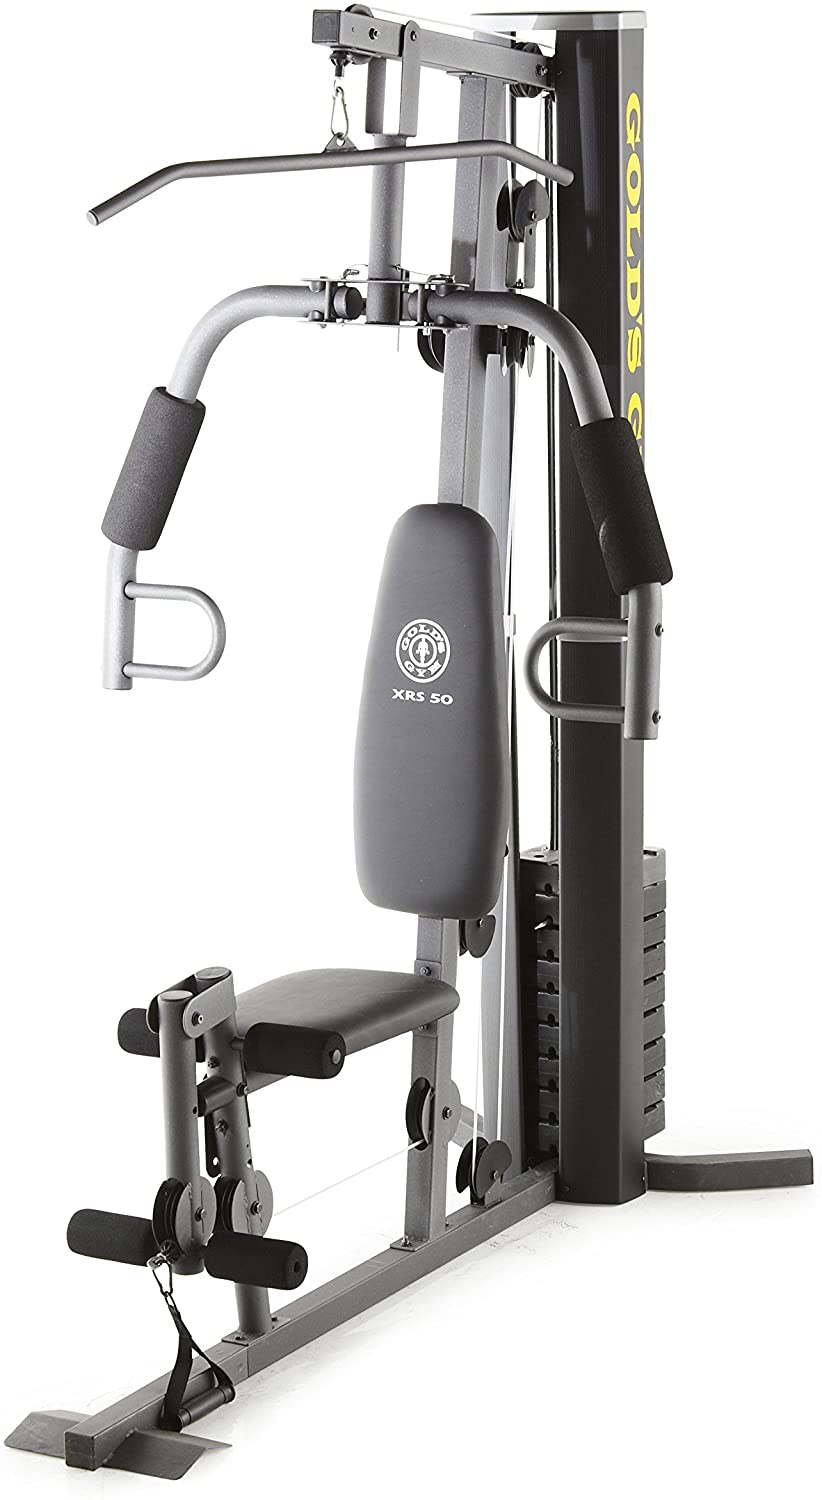 Review of ICON Fitness Gold's Gym XRS 50